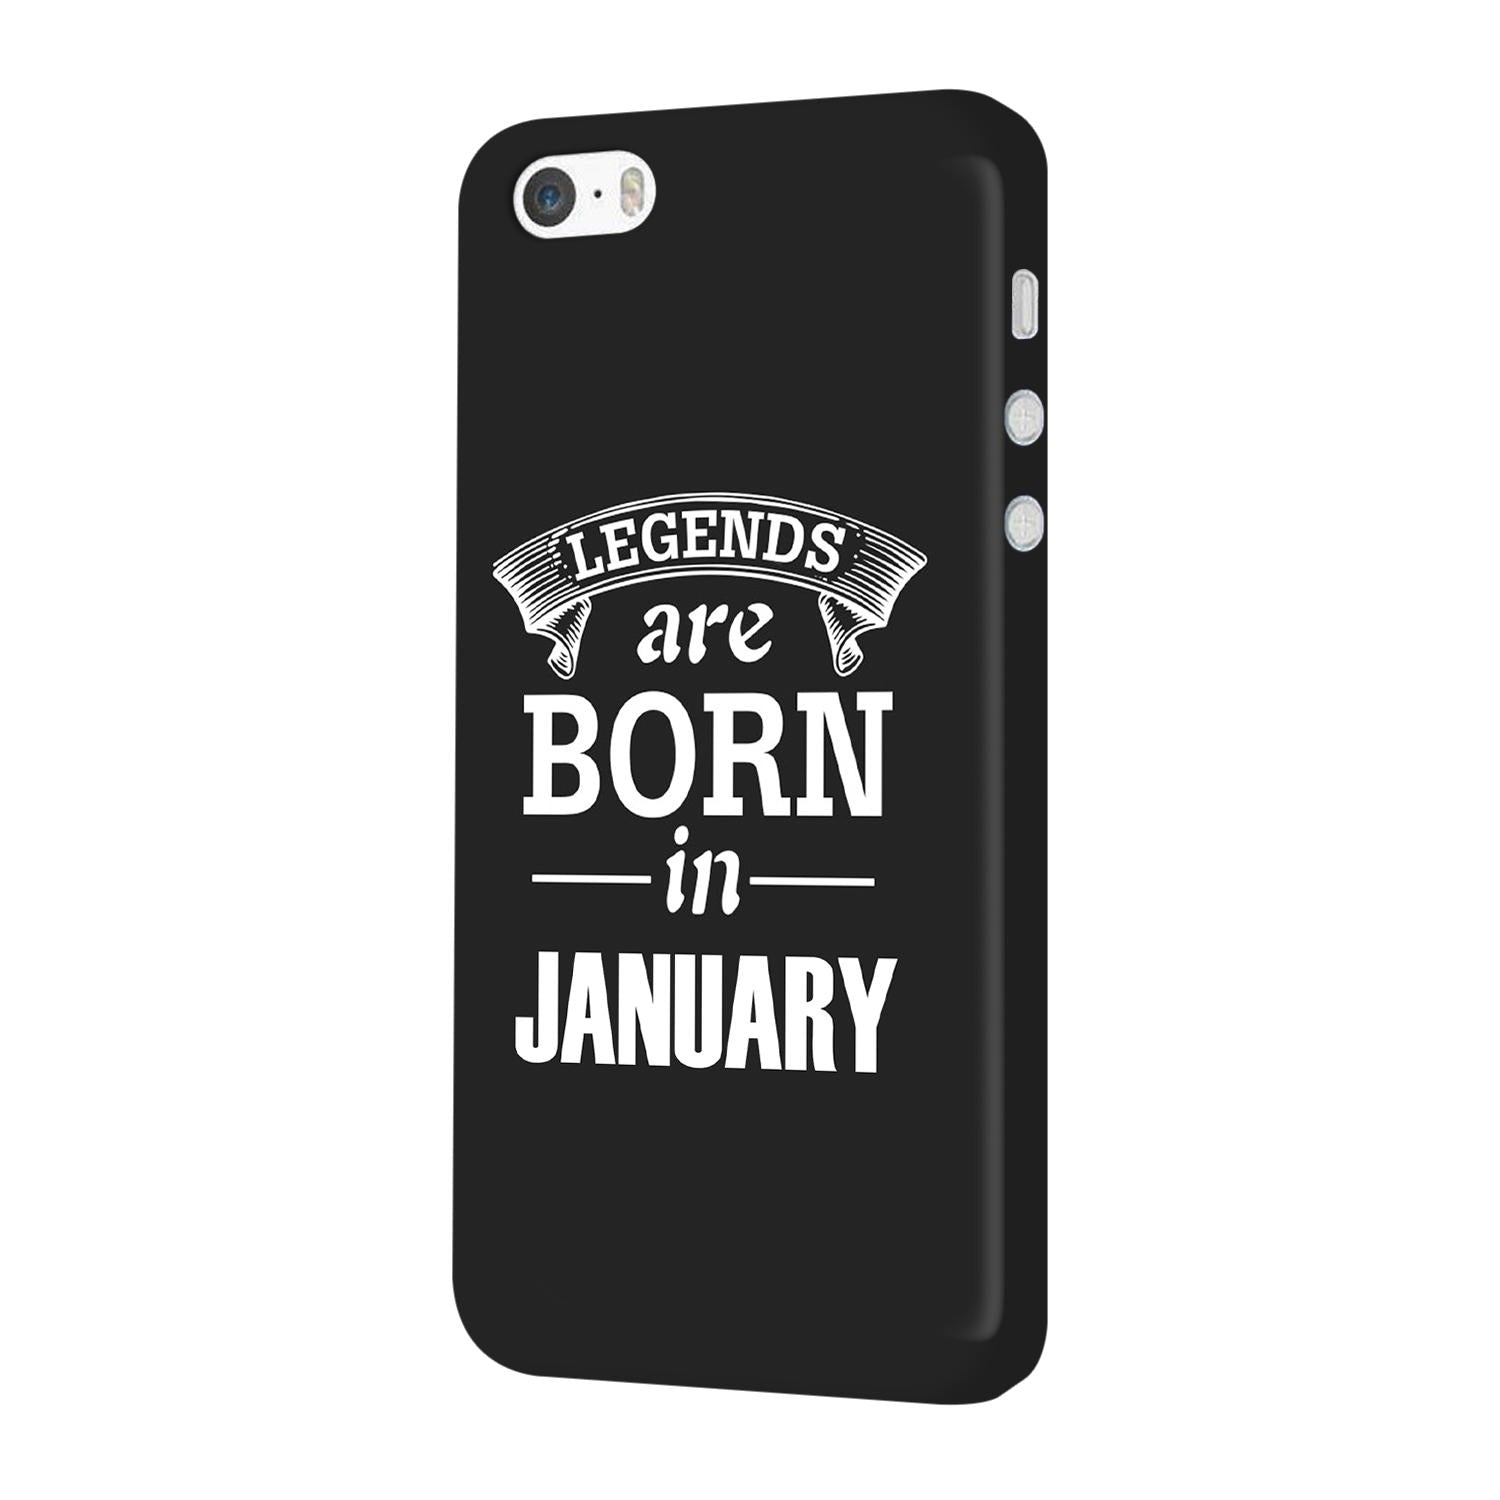 Legends January iPhone 5 Mobile Cover Case - MADANYU